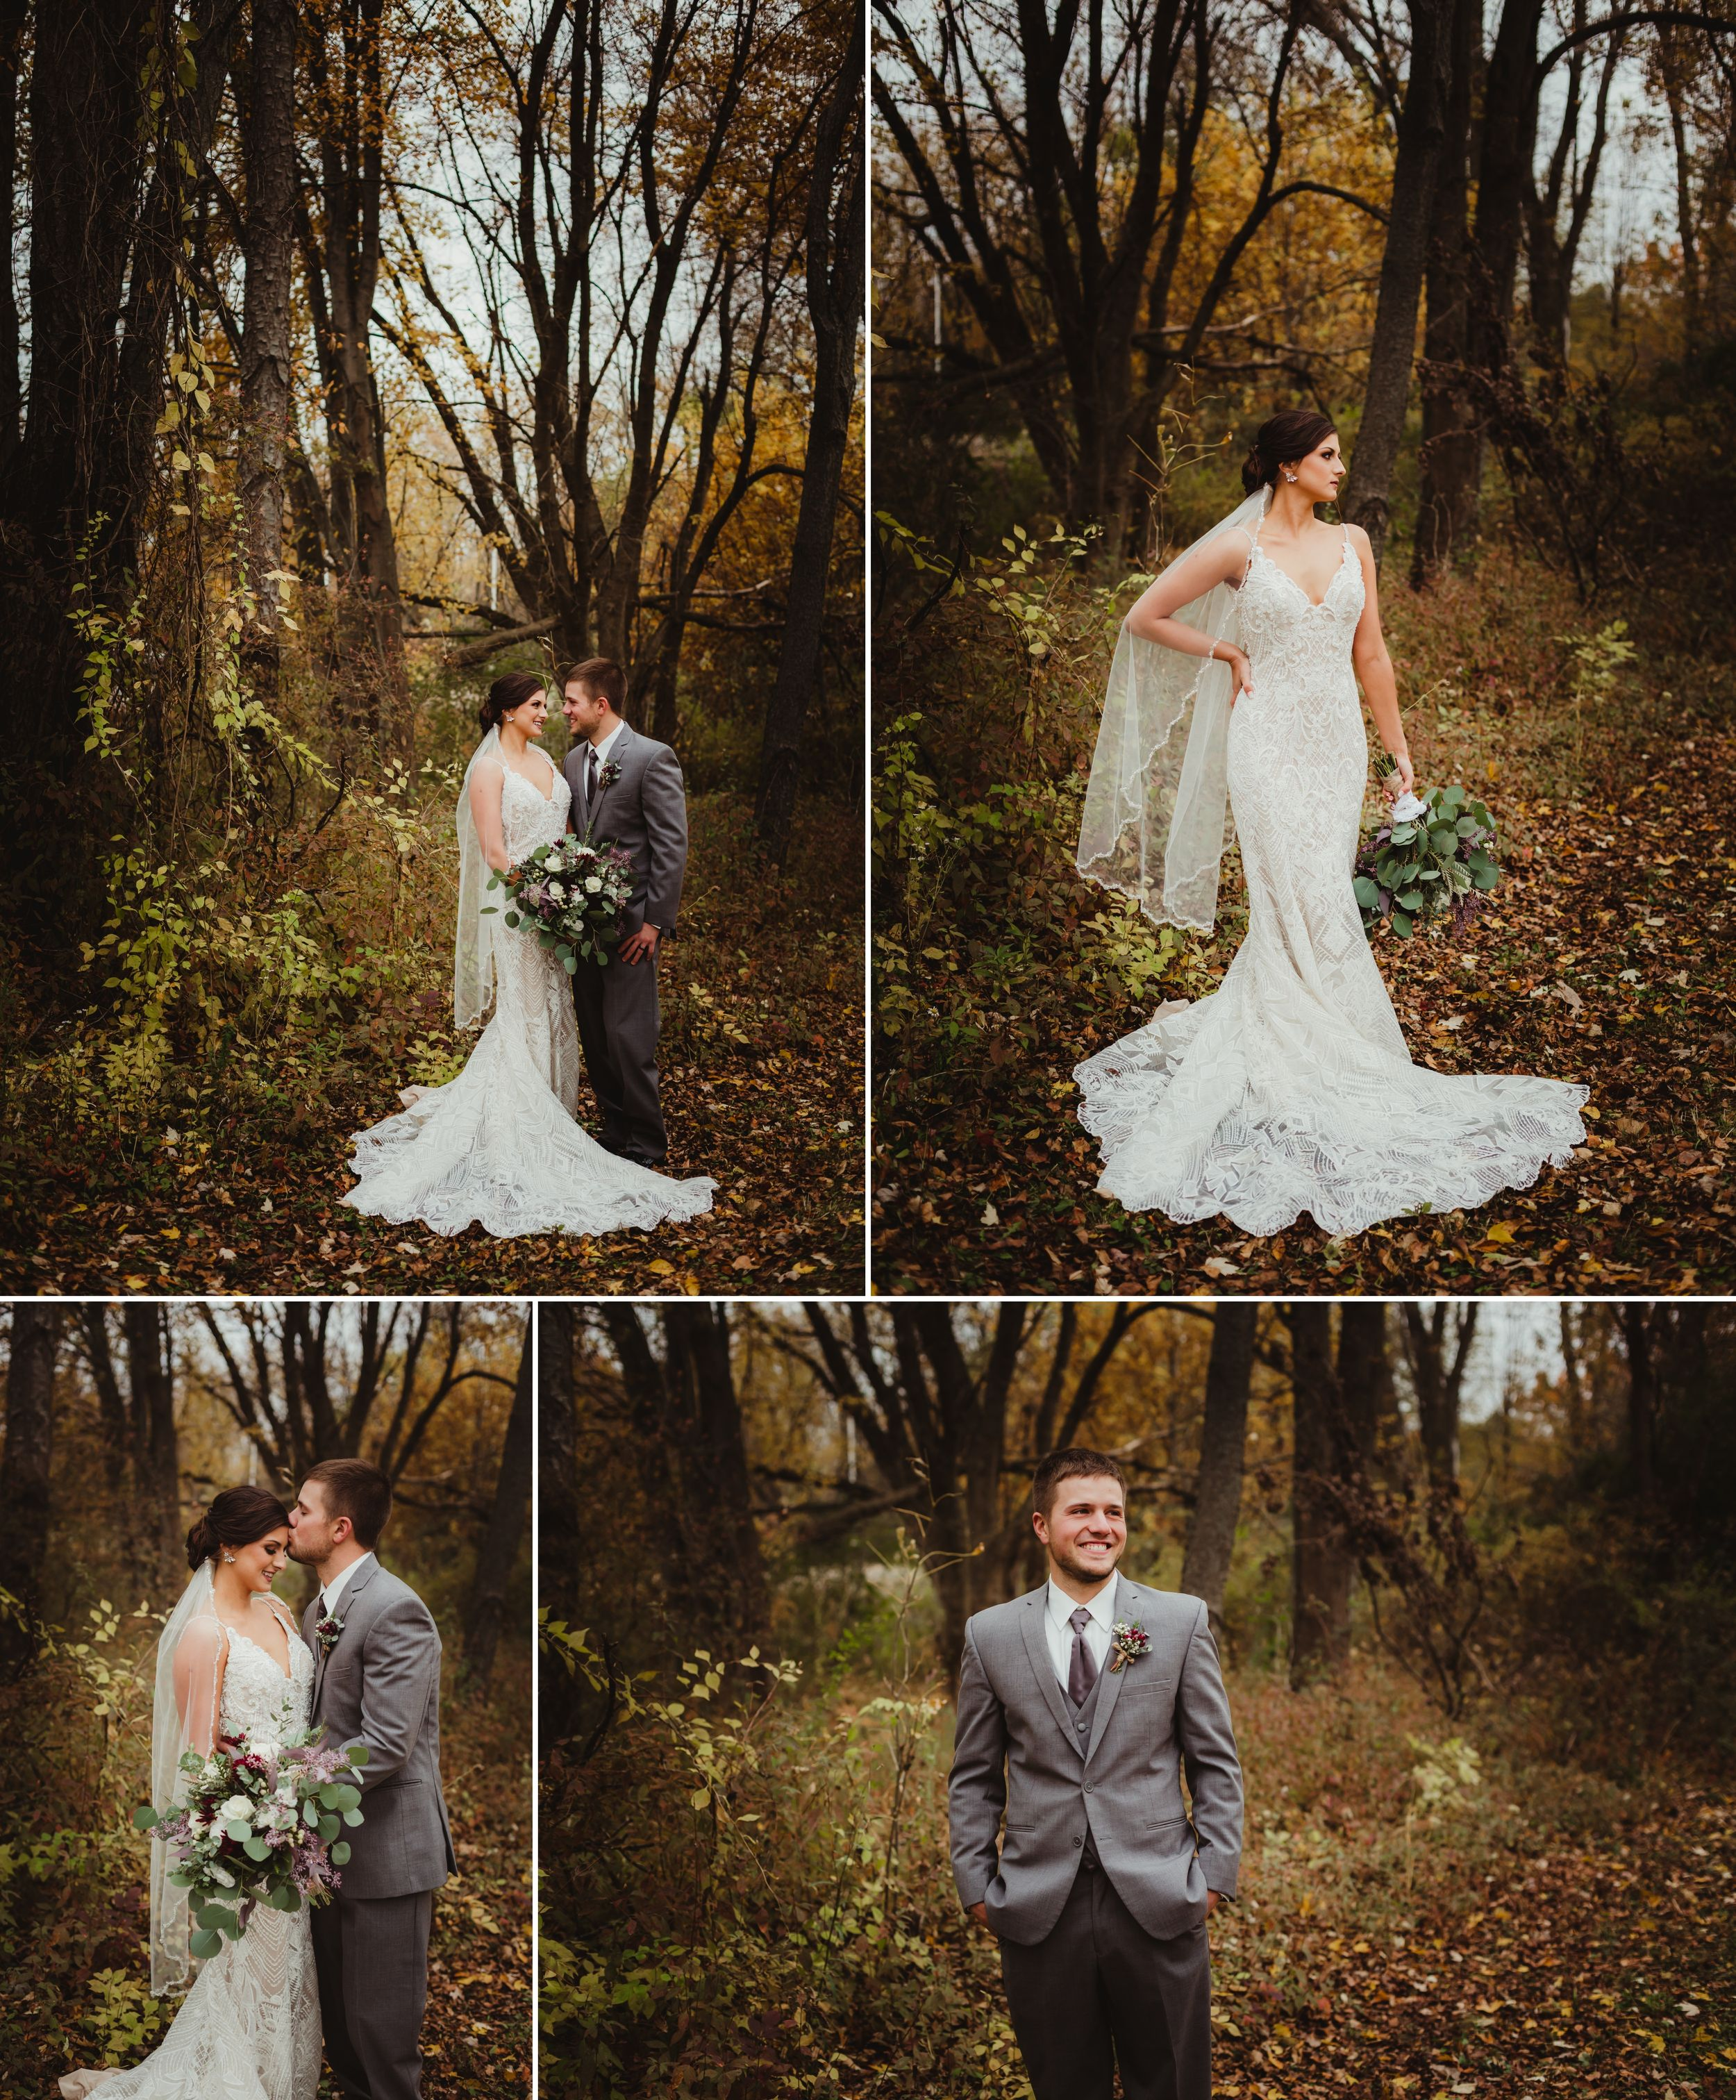 Bride and groom together and separately in various poses in front of a large tree. Bride's dress is form fitting.